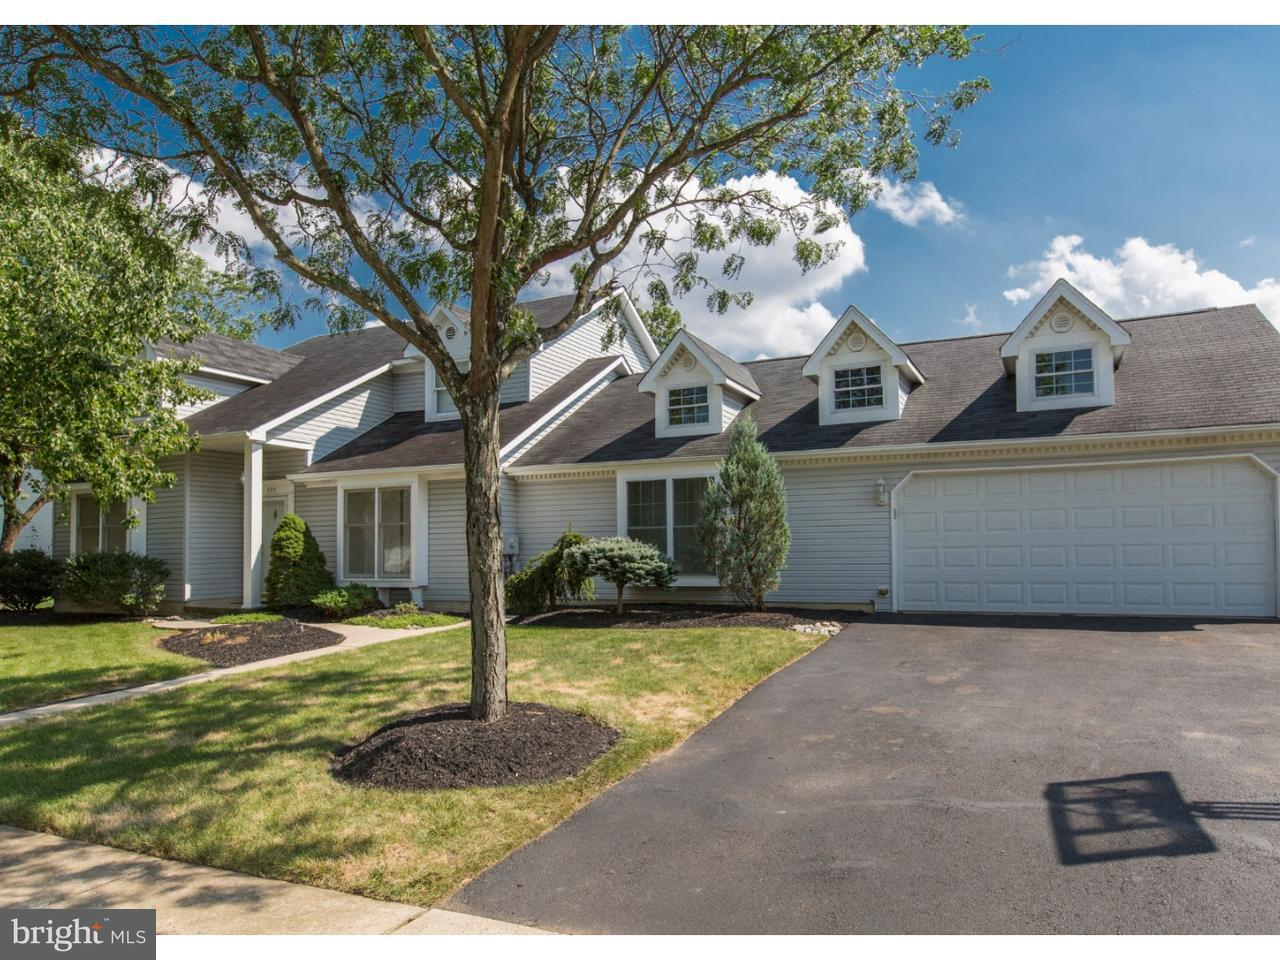 Single Family Home for Sale at 400 STANFORD Road Fairless Hills, Pennsylvania 19030 United States